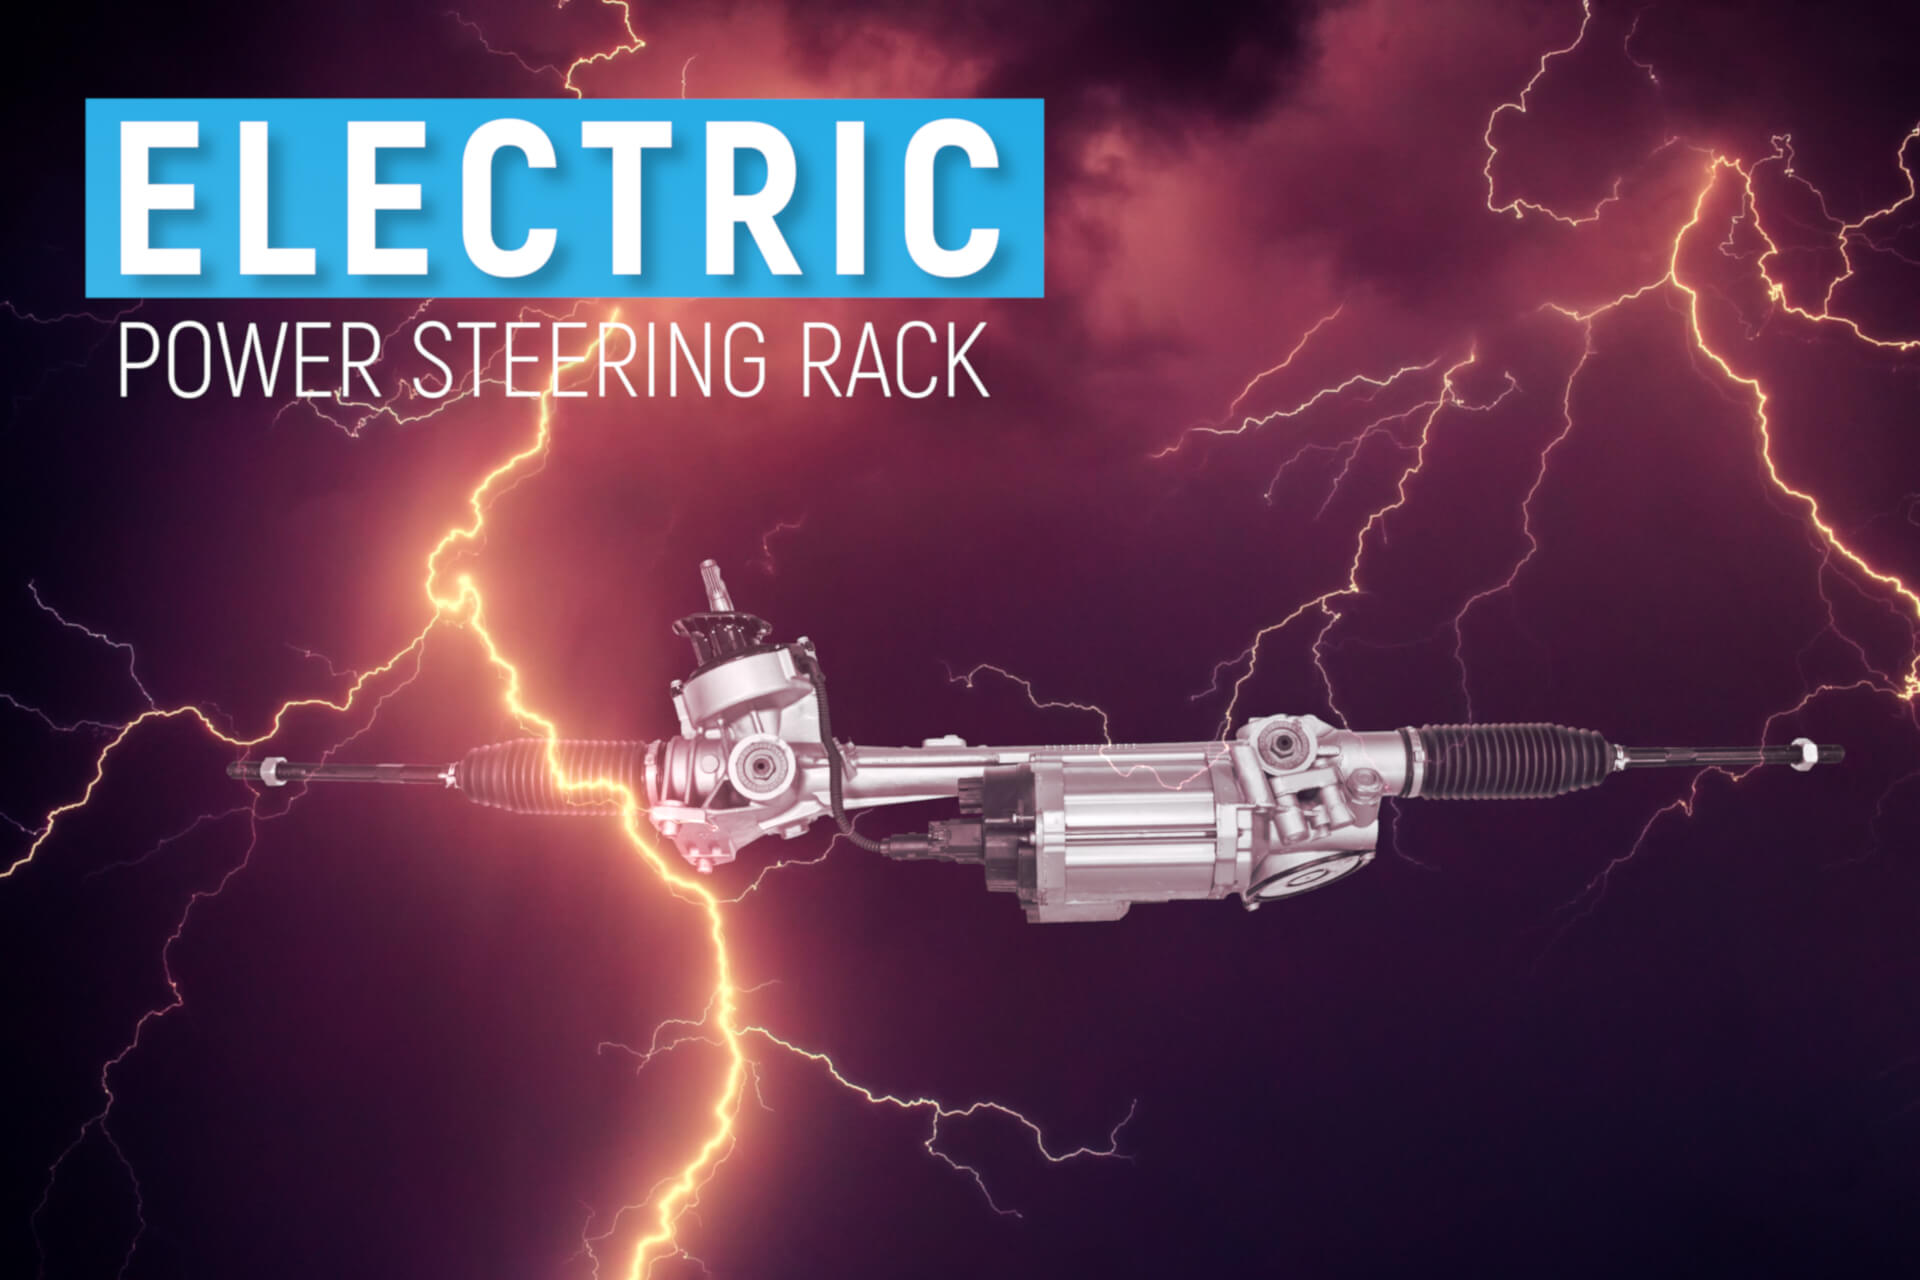 What is Electric Power Steering Rack and How it Works?